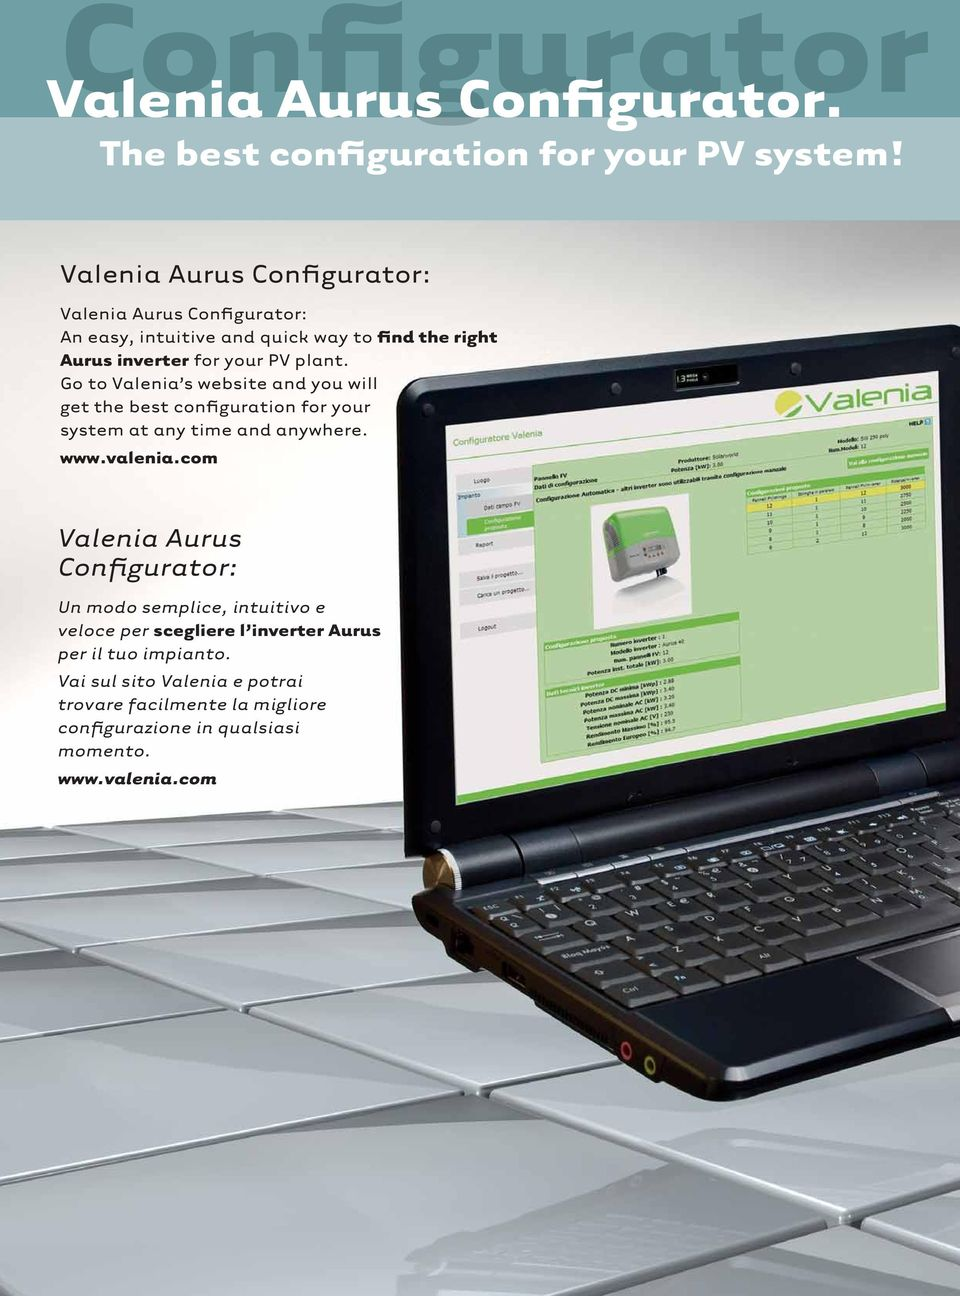 Go to Valenia s website and you will get the best configuration for your system at any time and anywhere. www.valenia.